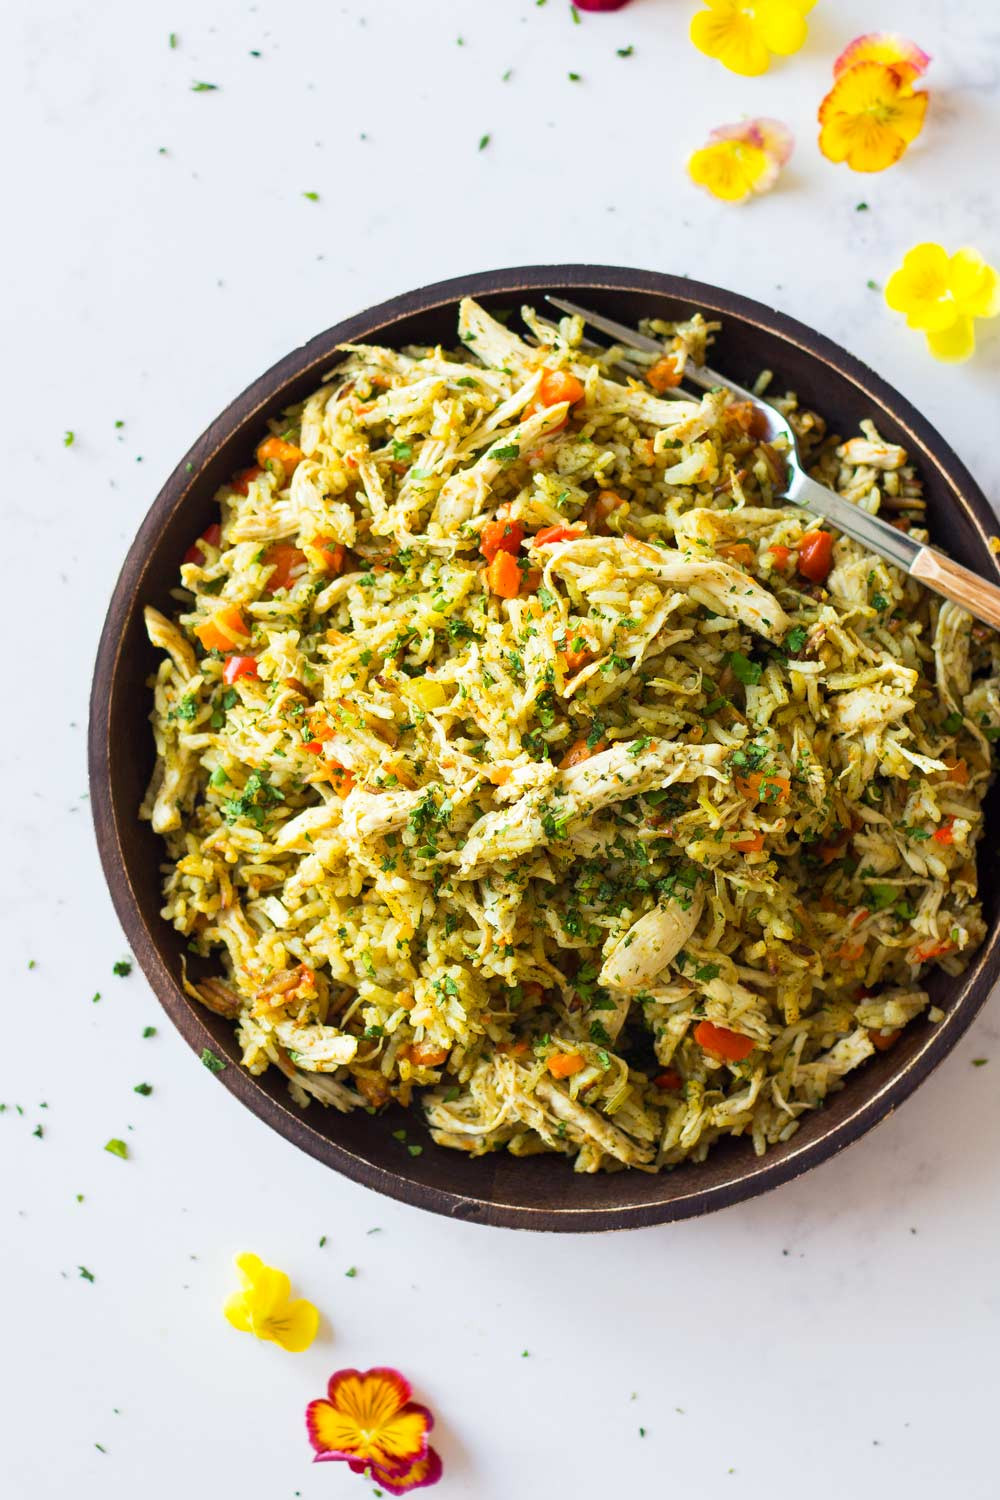 Instant Pot Rice Recipes  Quick and Easy Instant Pot Chicken and Rice Green